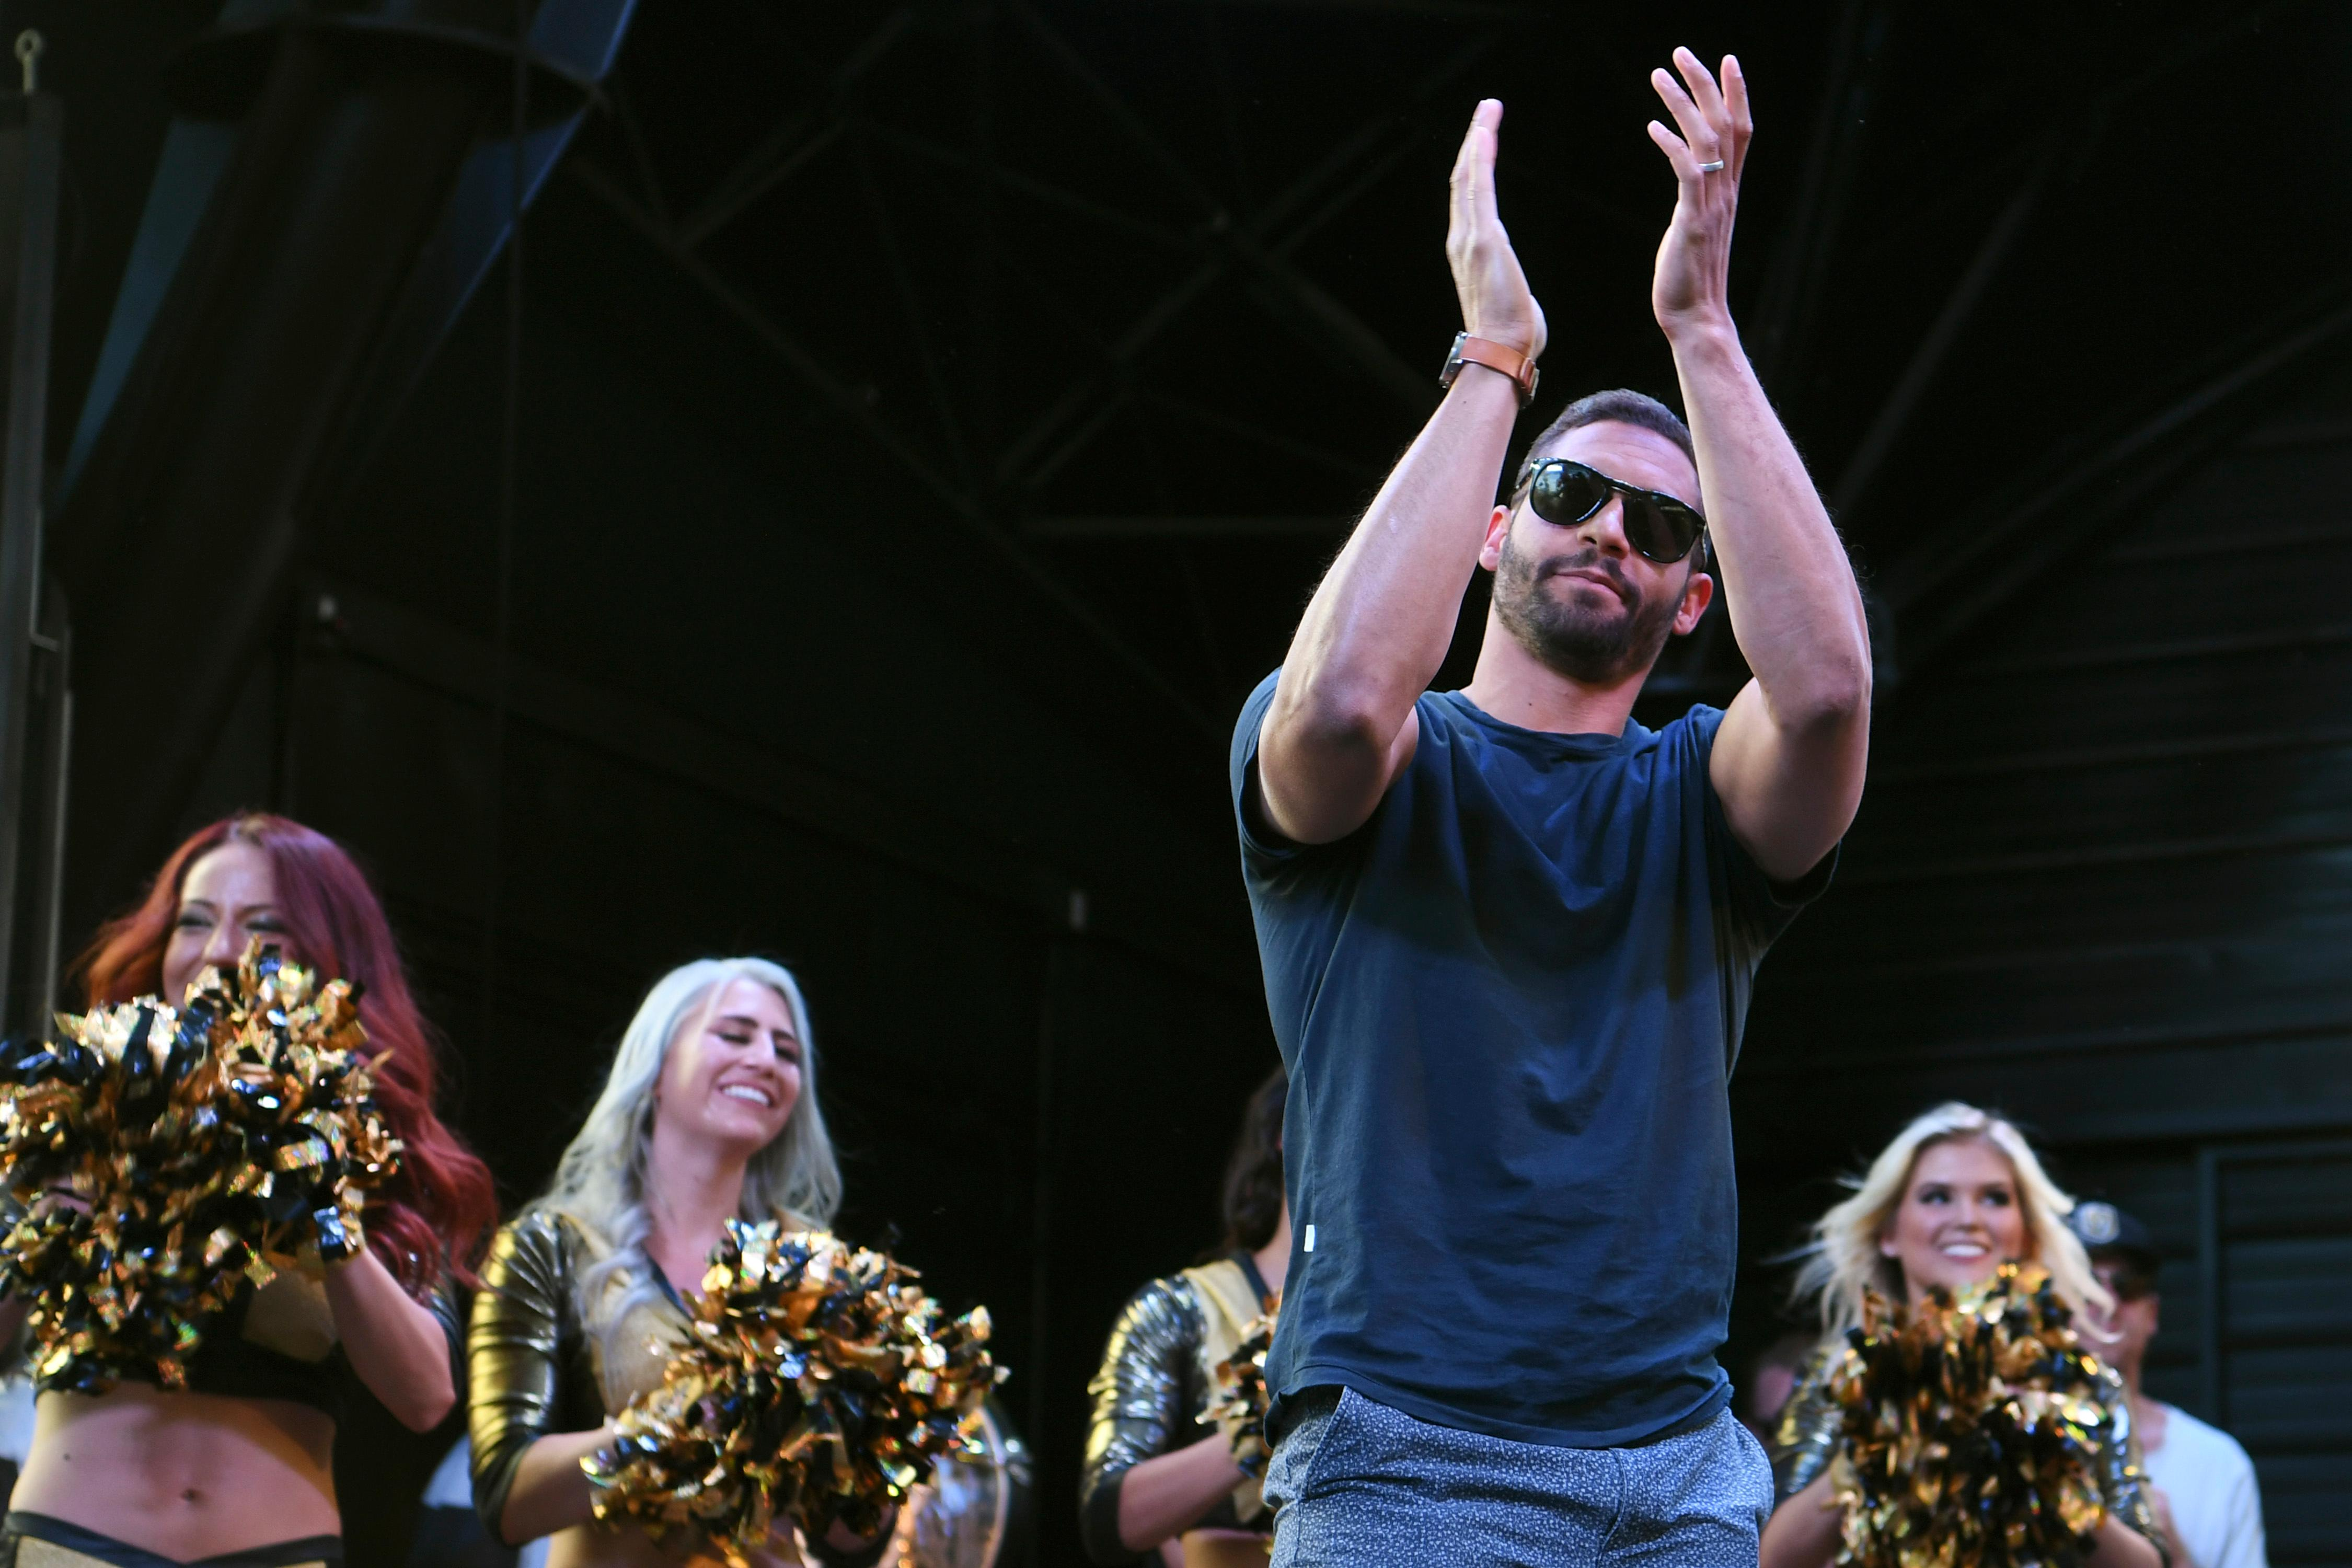 Vegas Golden Knights left wing Pierre-Edouard Bellemare salutes the estimated crowd of 7,500 people during a Vegas Golden Knights Stick Salute to Vegas fan appreciation rally at the Fremont Street Experience Wednesday, June 13, 2018. CREDIT: Sam Morris/Las Vegas News Bureau